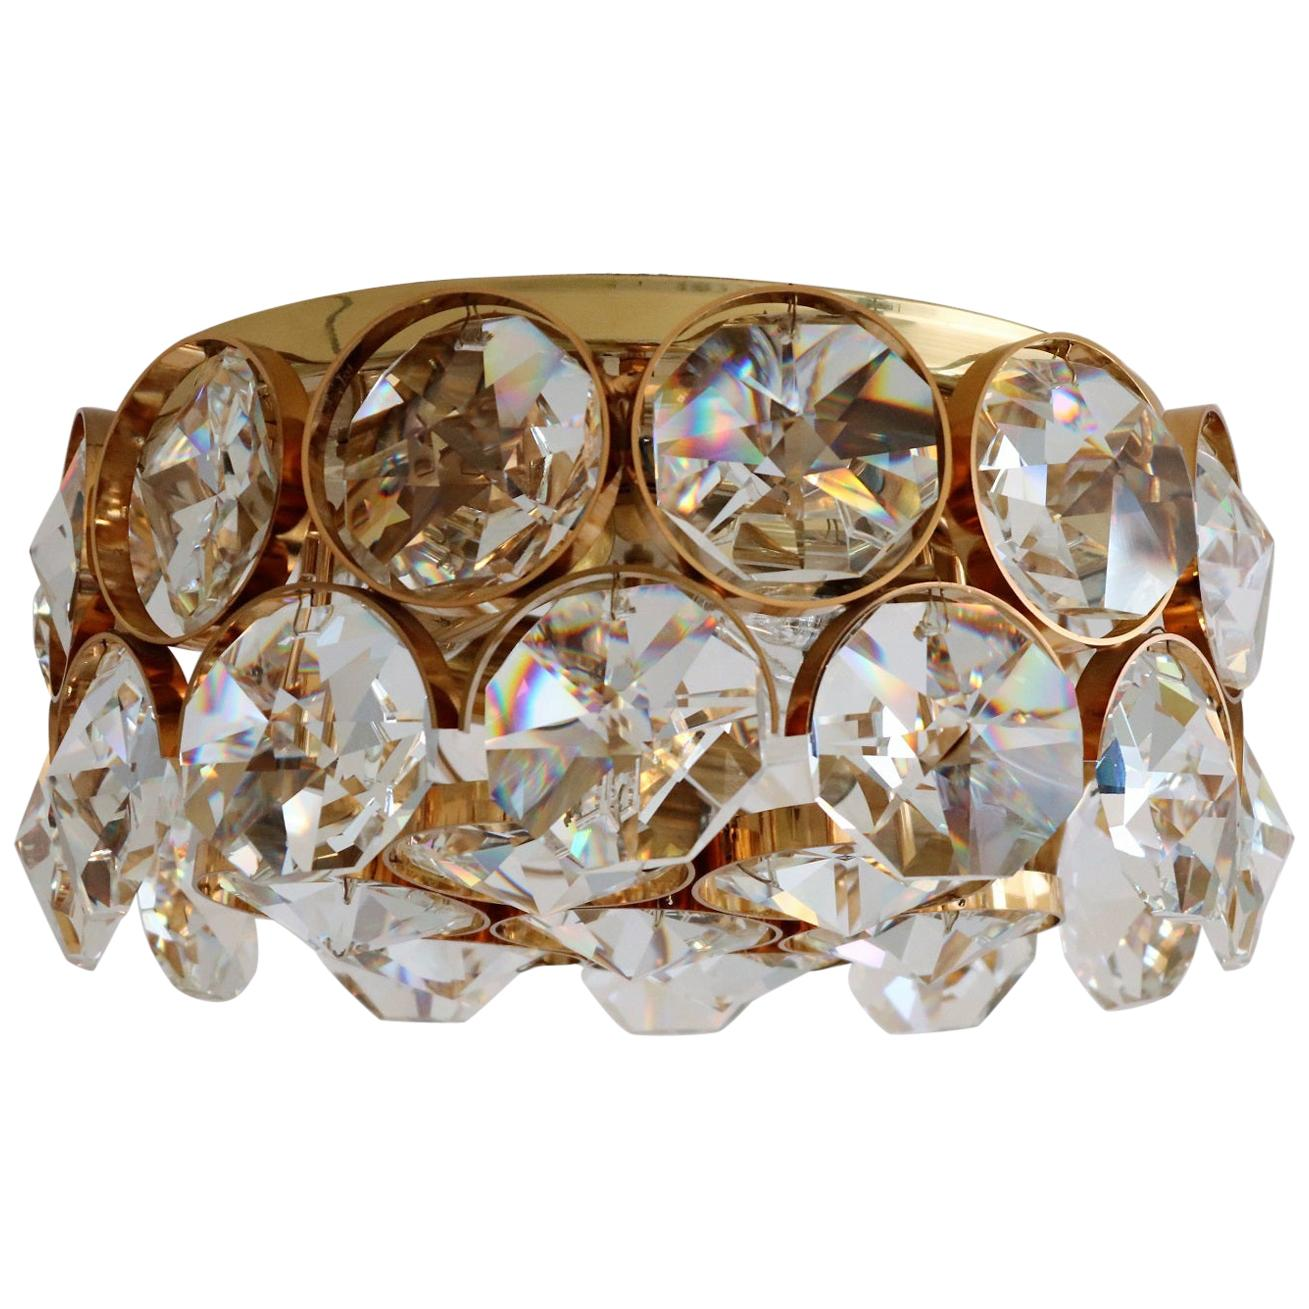 Midcentury Crystal and Gold-Plated Brass Flush Mount Lighting by Palwa, 1960s